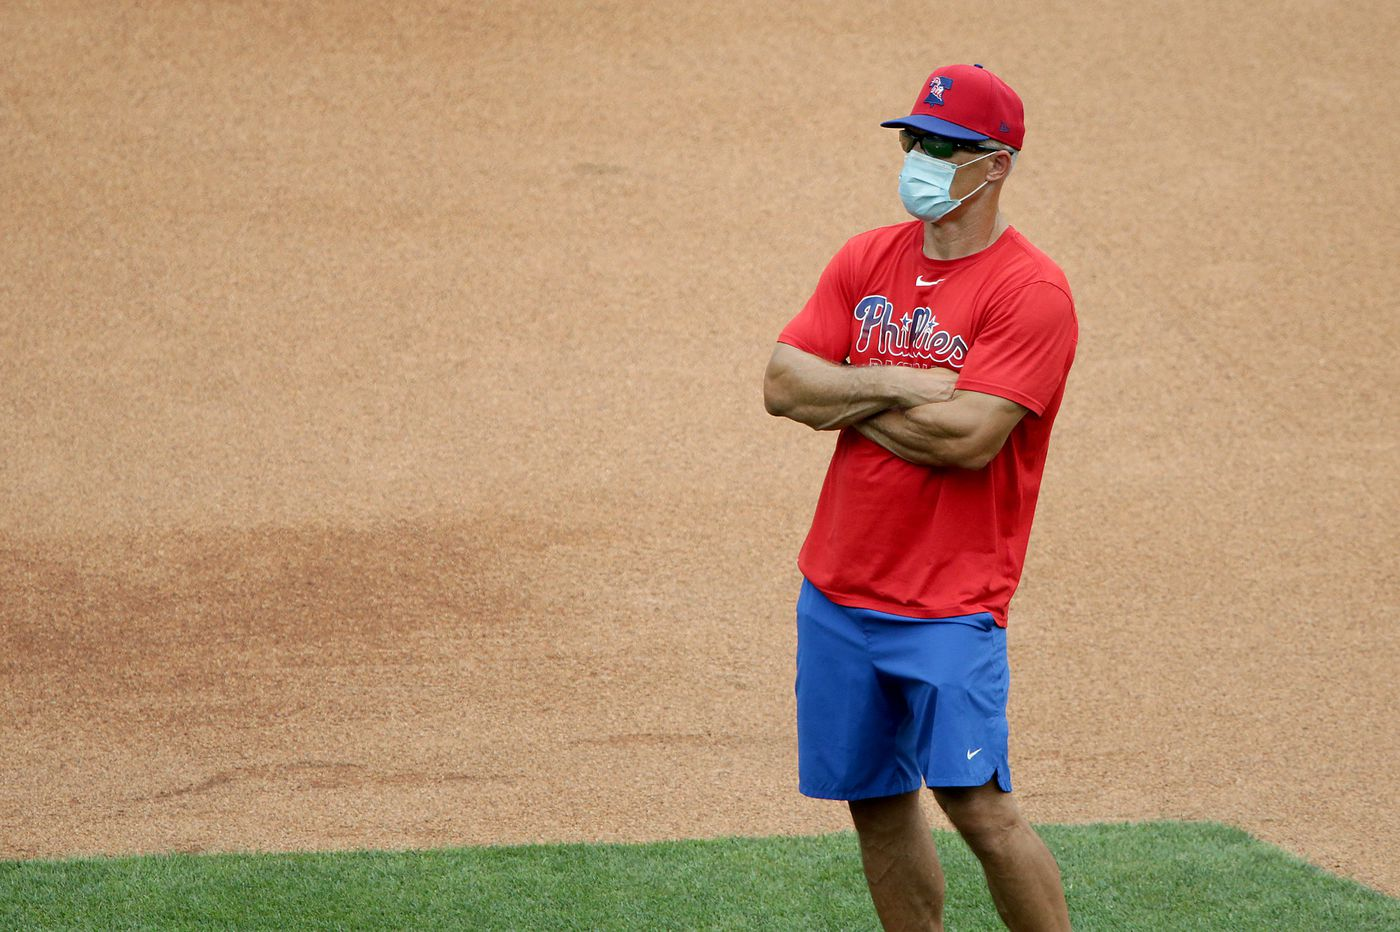 Phillies manager Joe Girardi on MLB's COVID-19 testing: 'We need to get the tests turned around quicker'